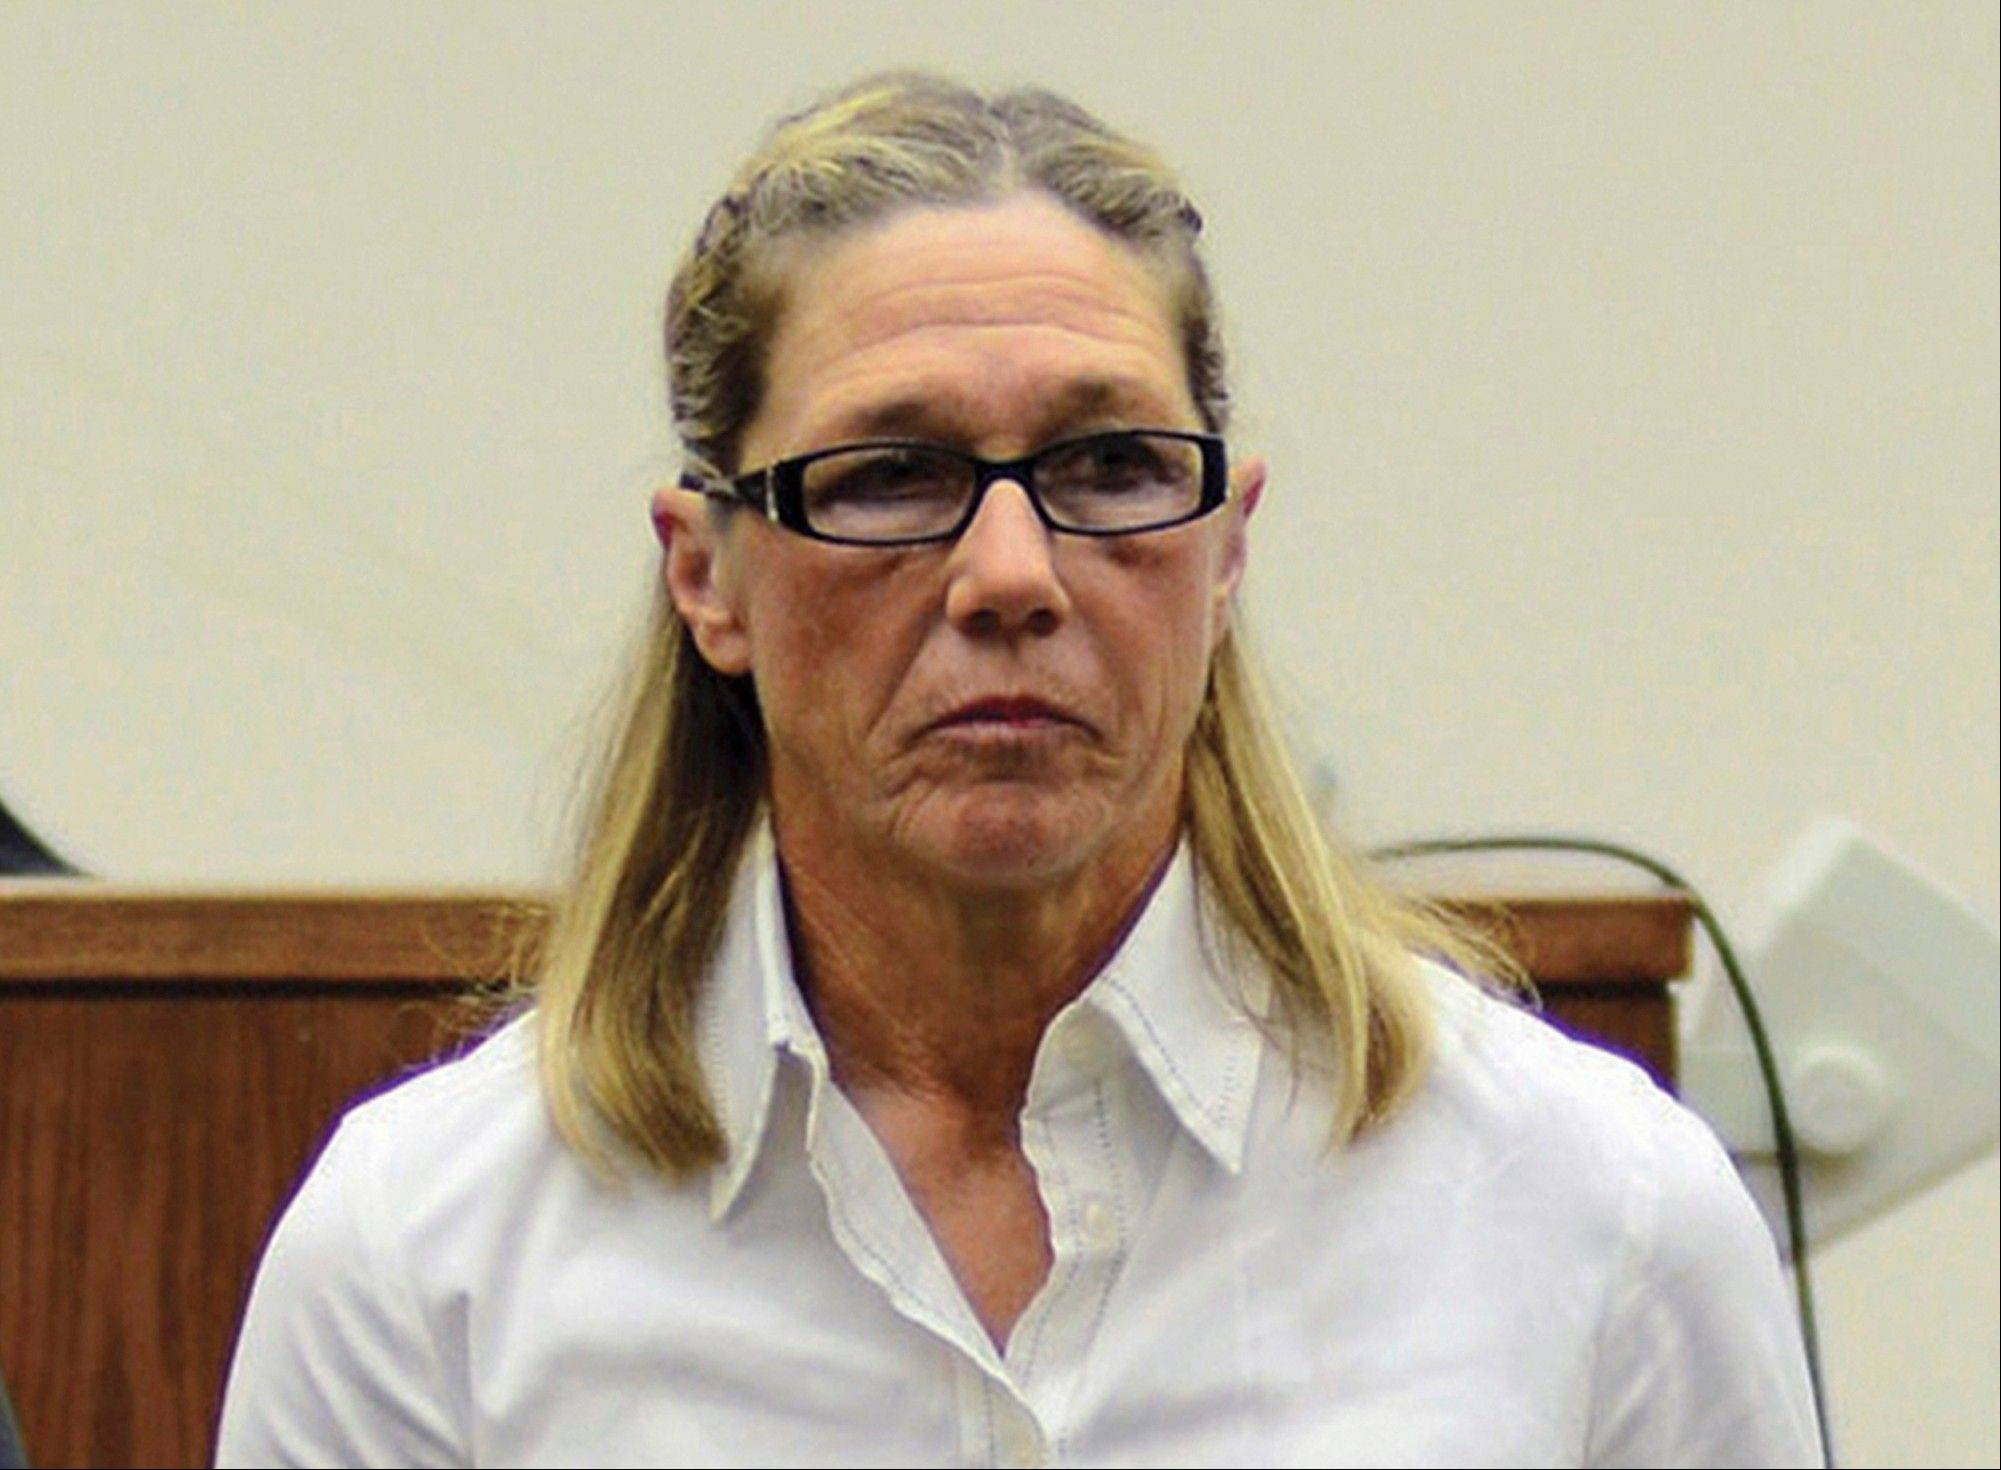 Dixon bookkeeper who stole $53 million gets 20 years